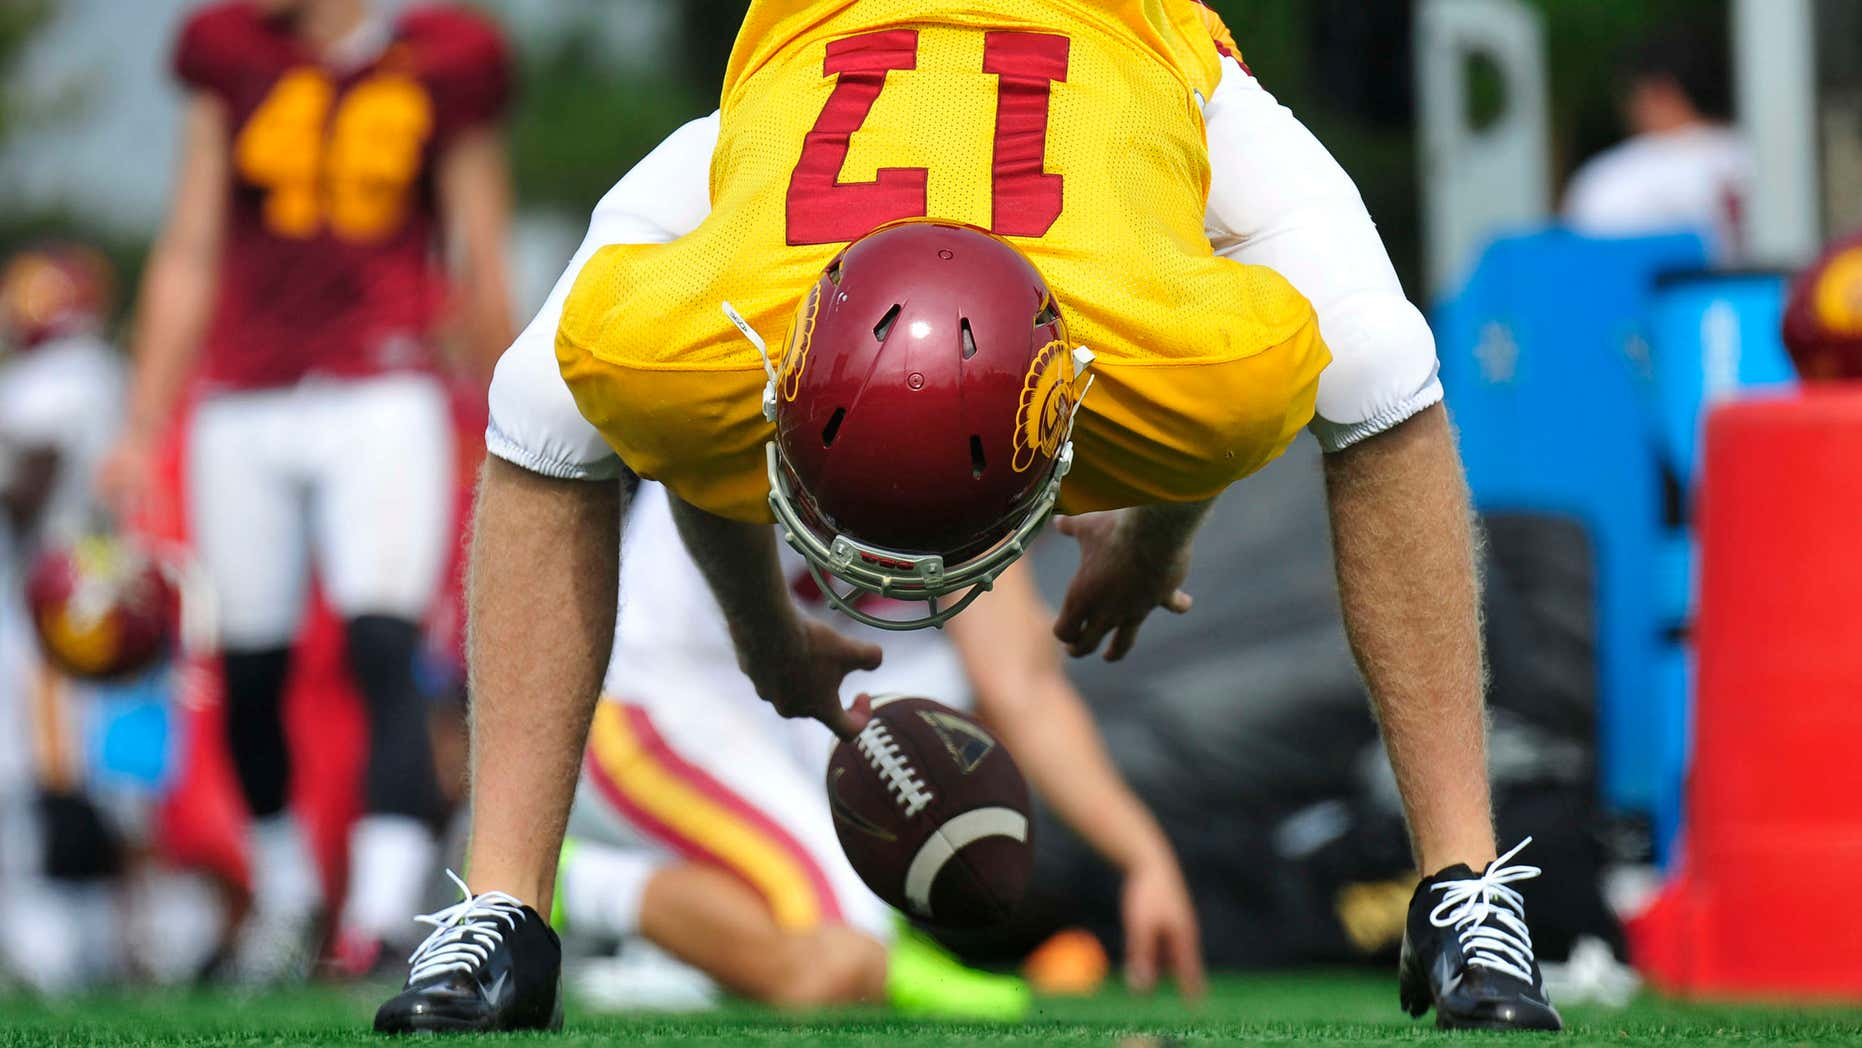 Sept. 15, 2015: This photo provided by the University of Southern California shows USC football player Jake Olson snaping the ball during NCAA college football practice on in Los Angeles.